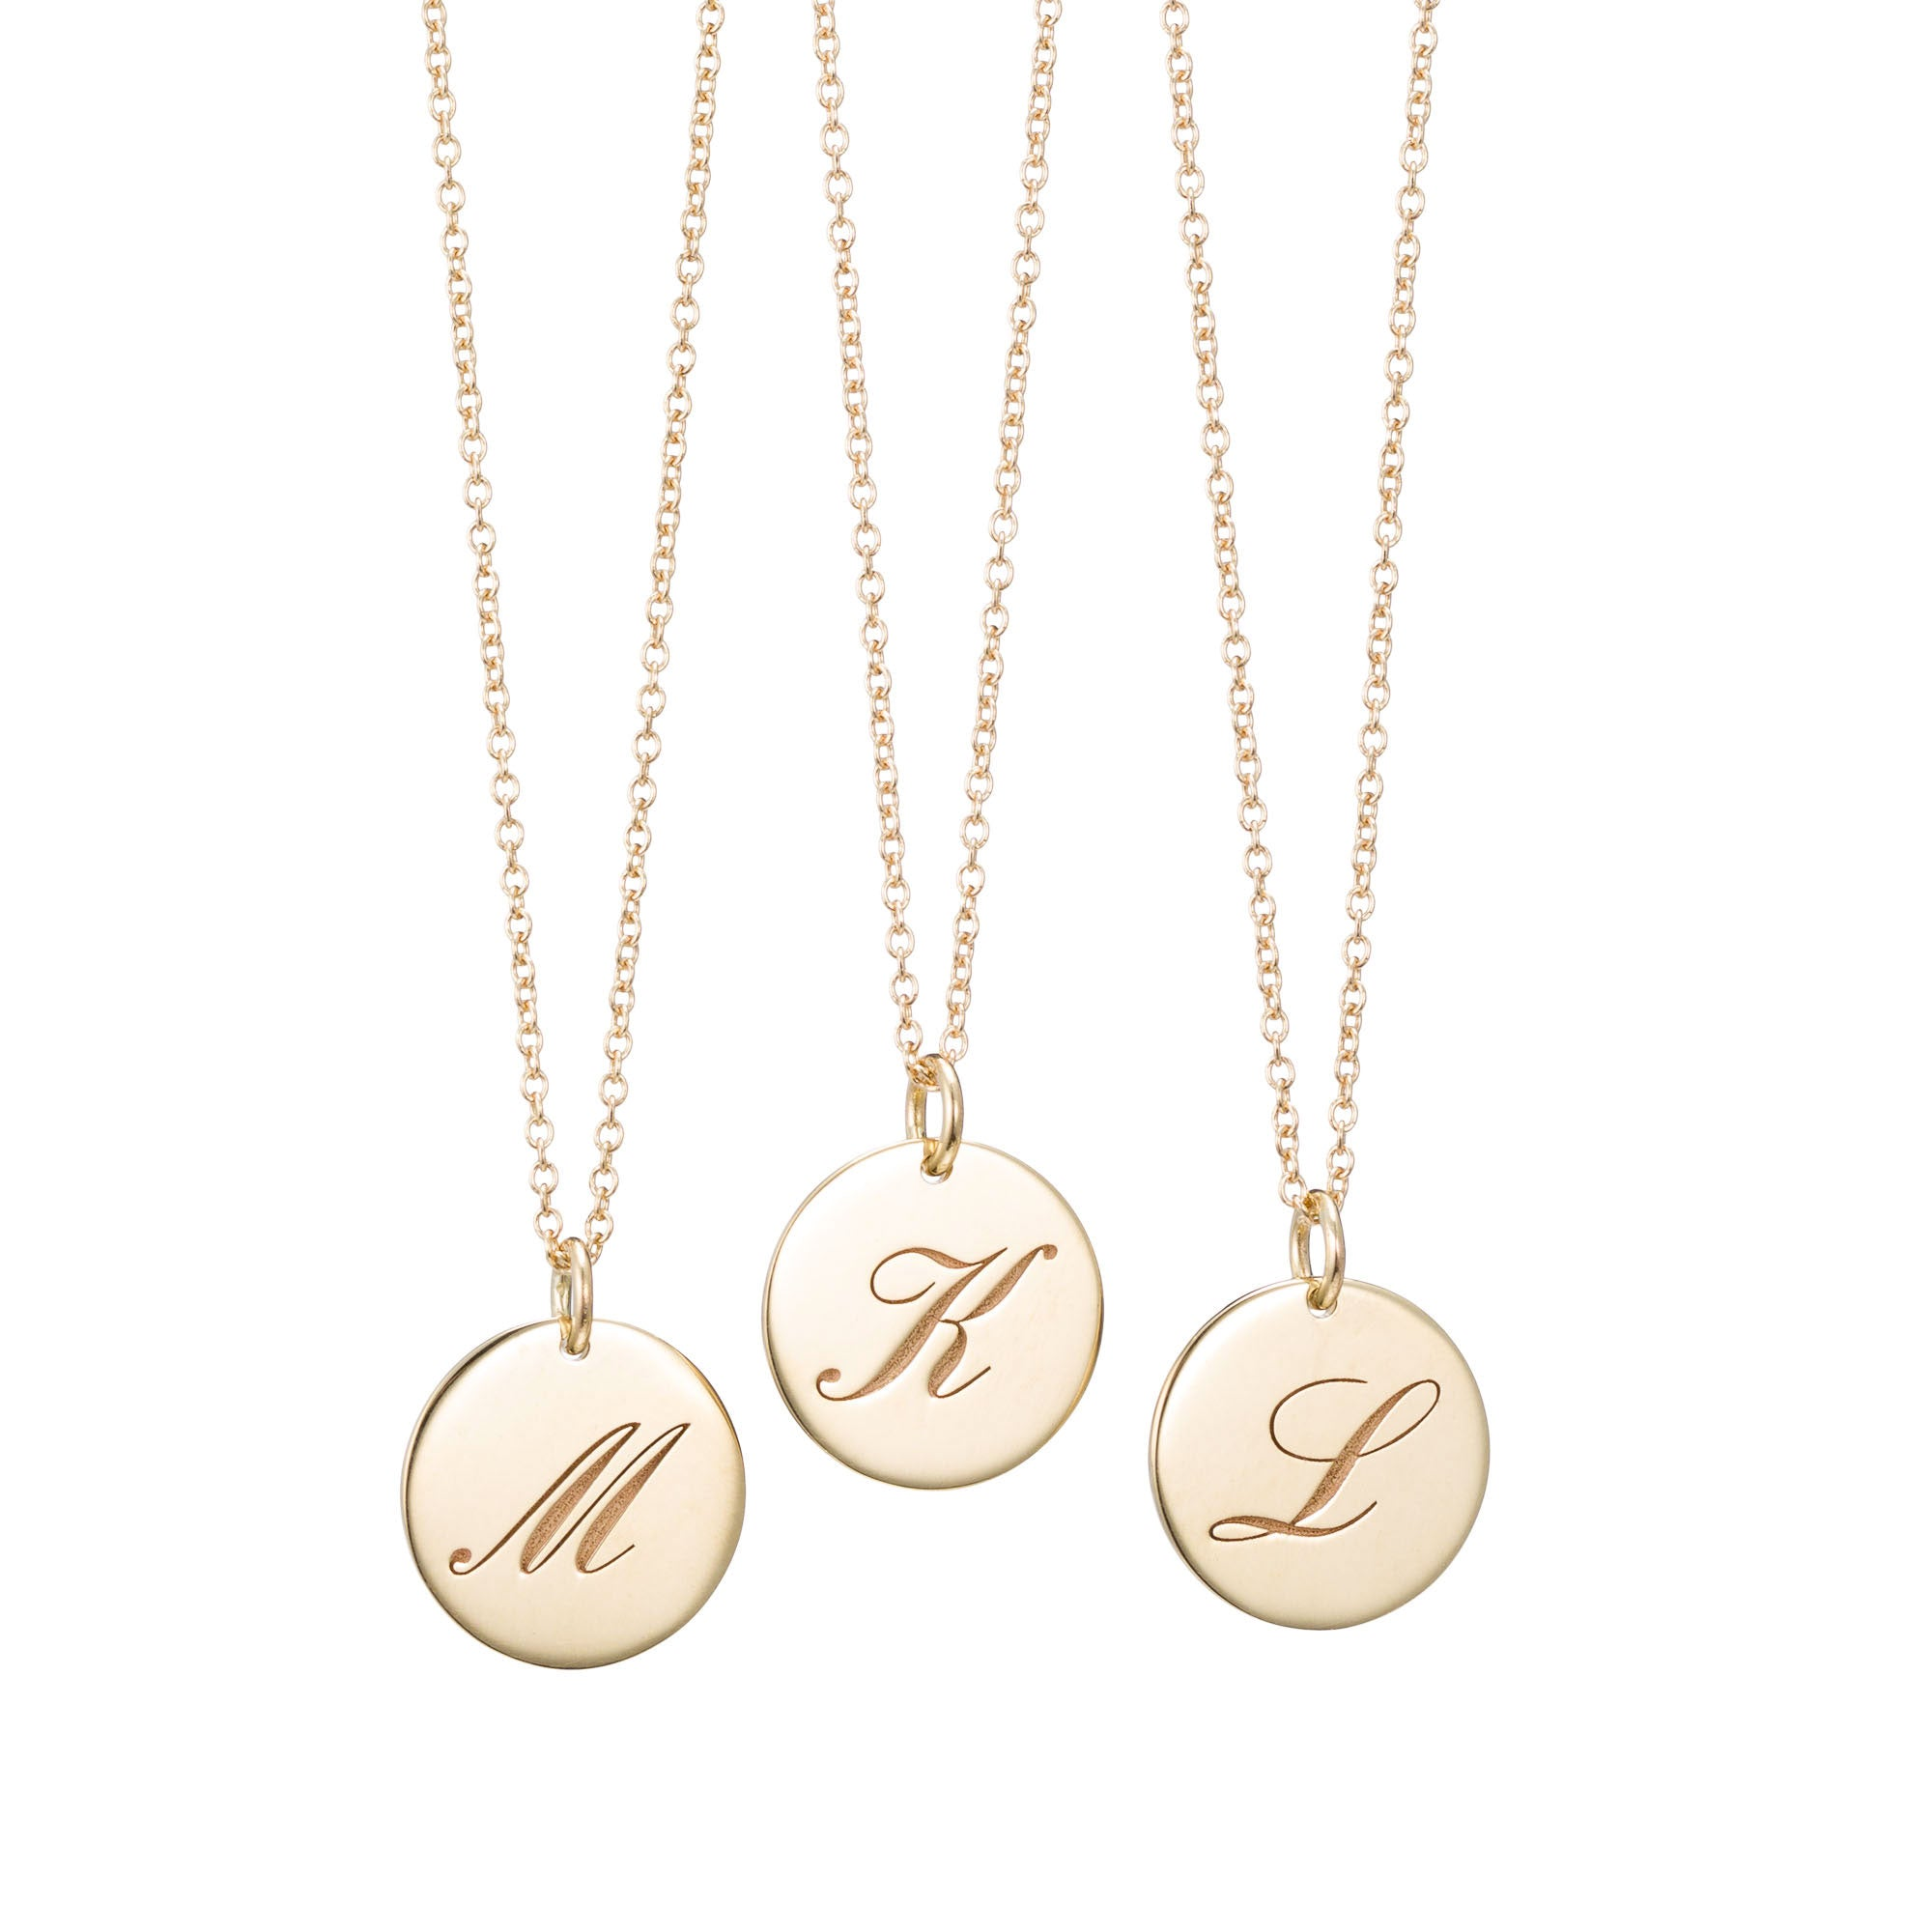 Large 14K Gold Initial Necklace (available with or without chain)